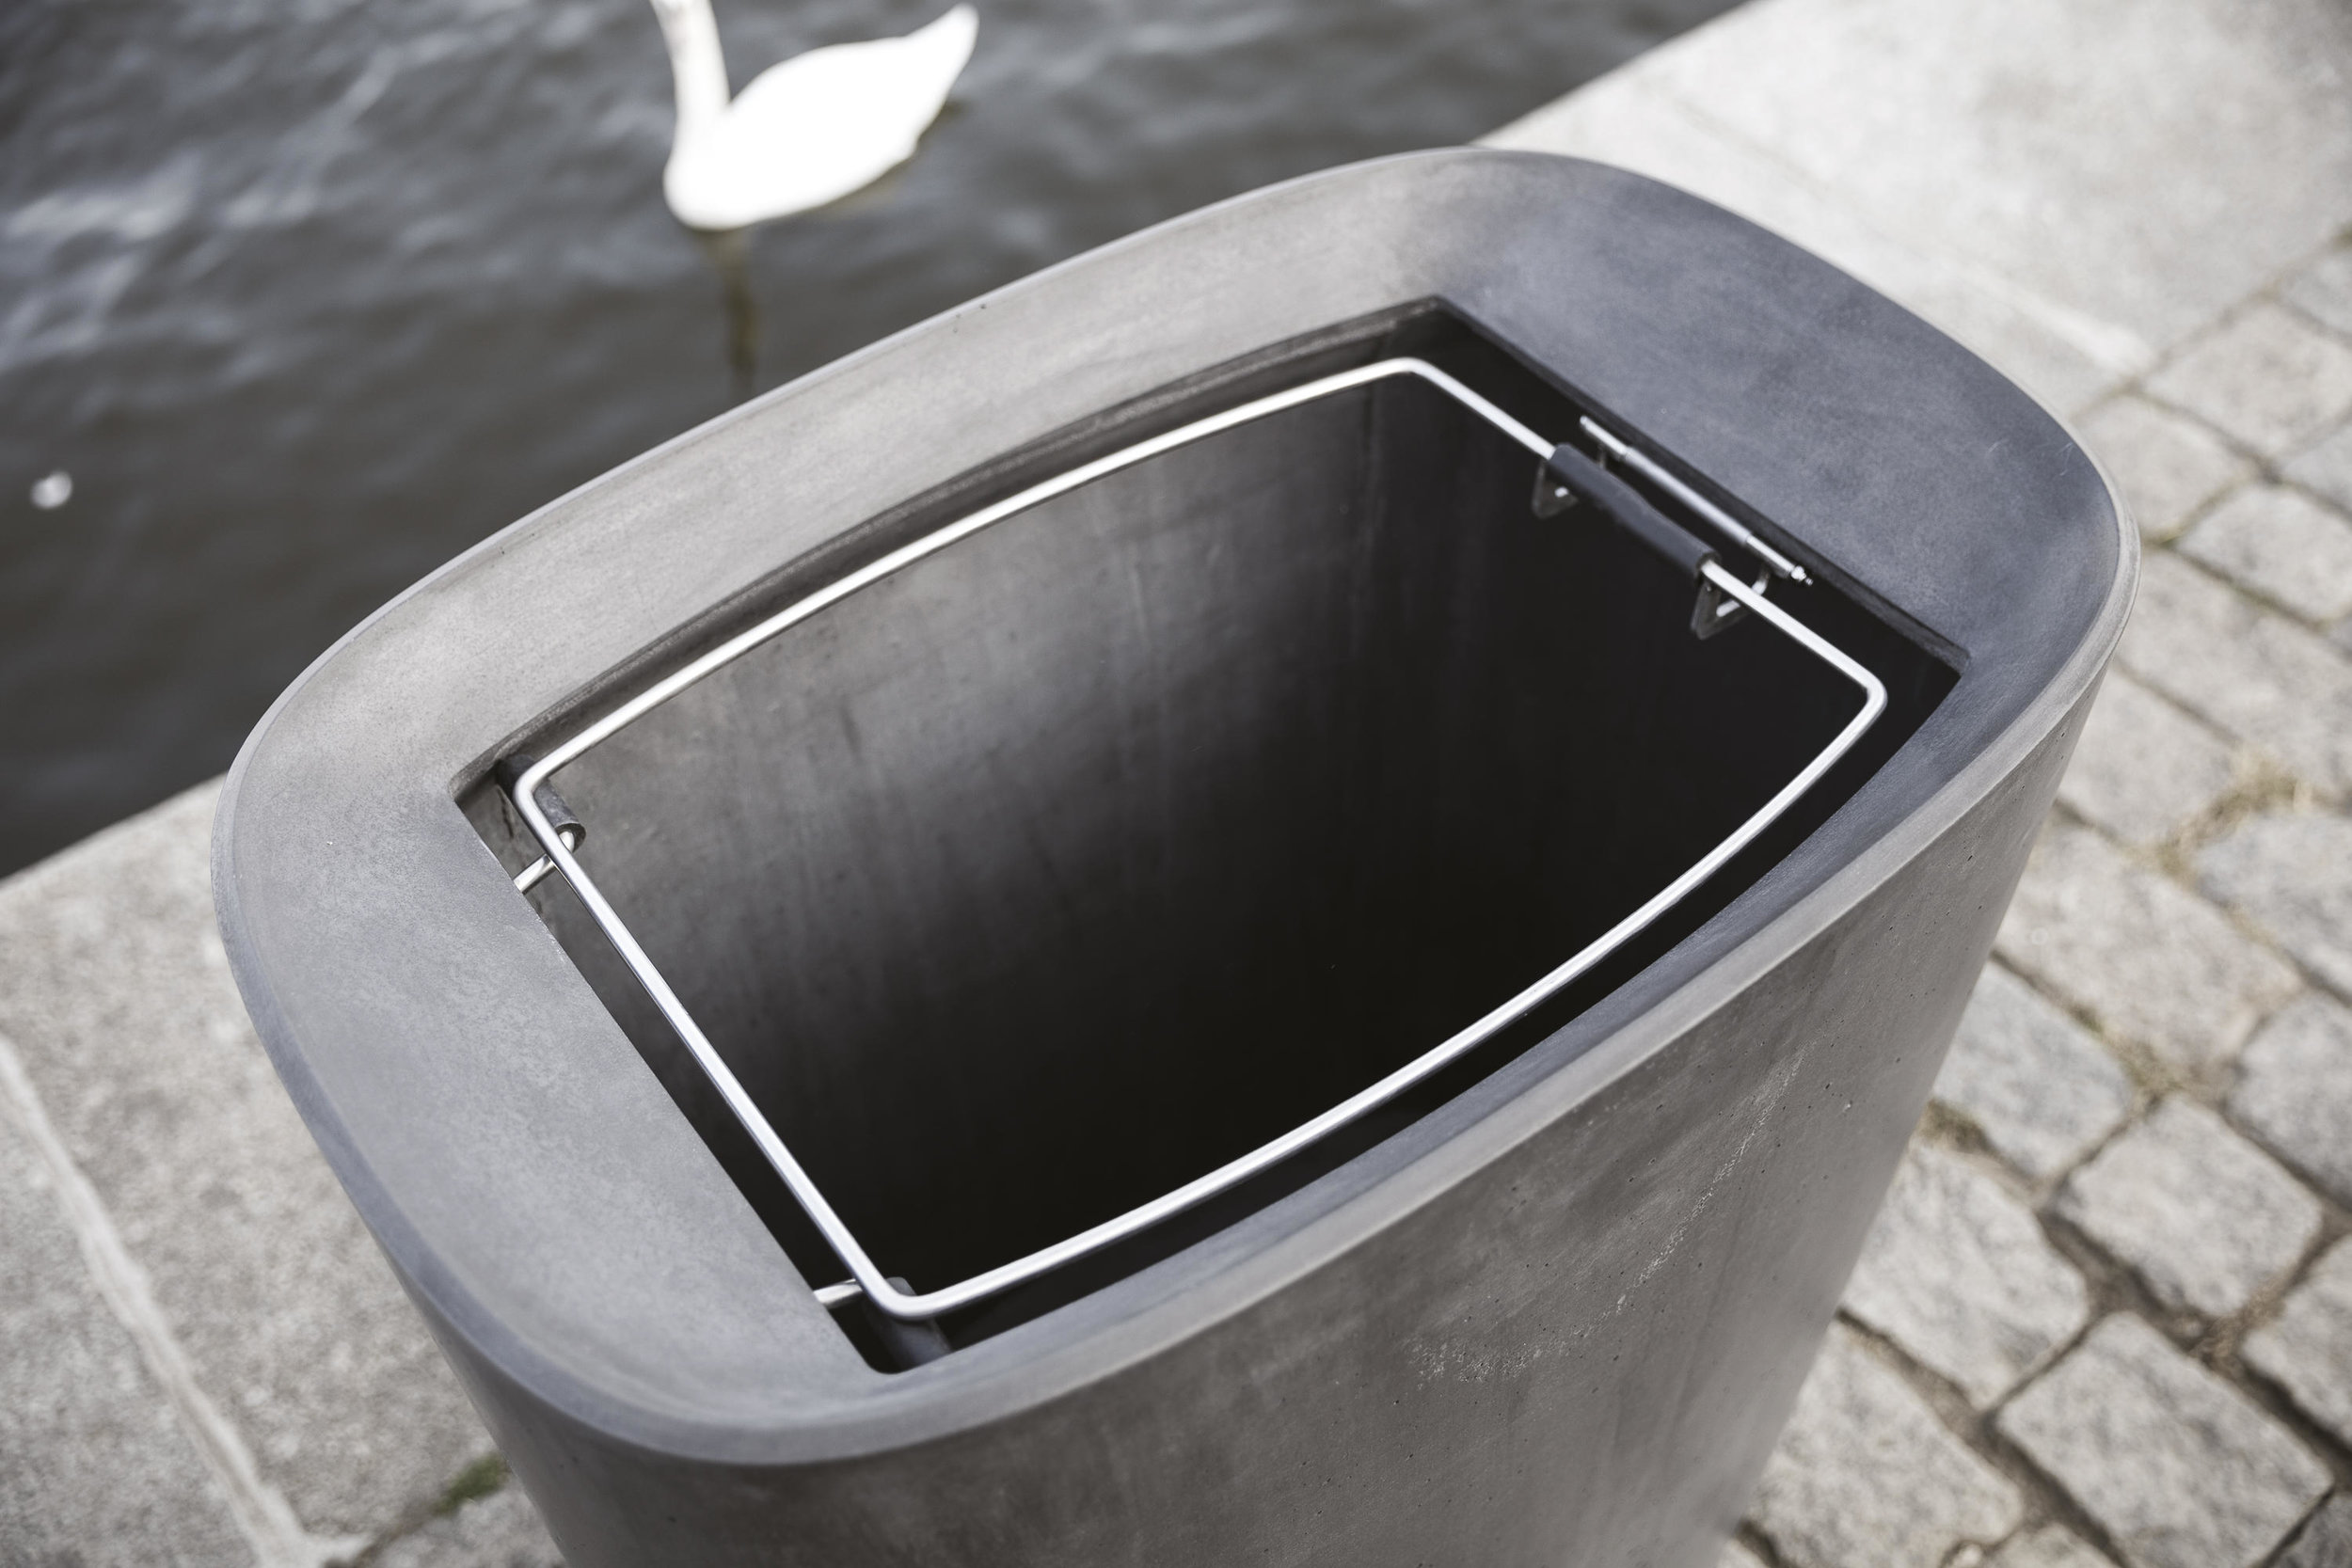 better-better-04-litter-bins-b.jpg